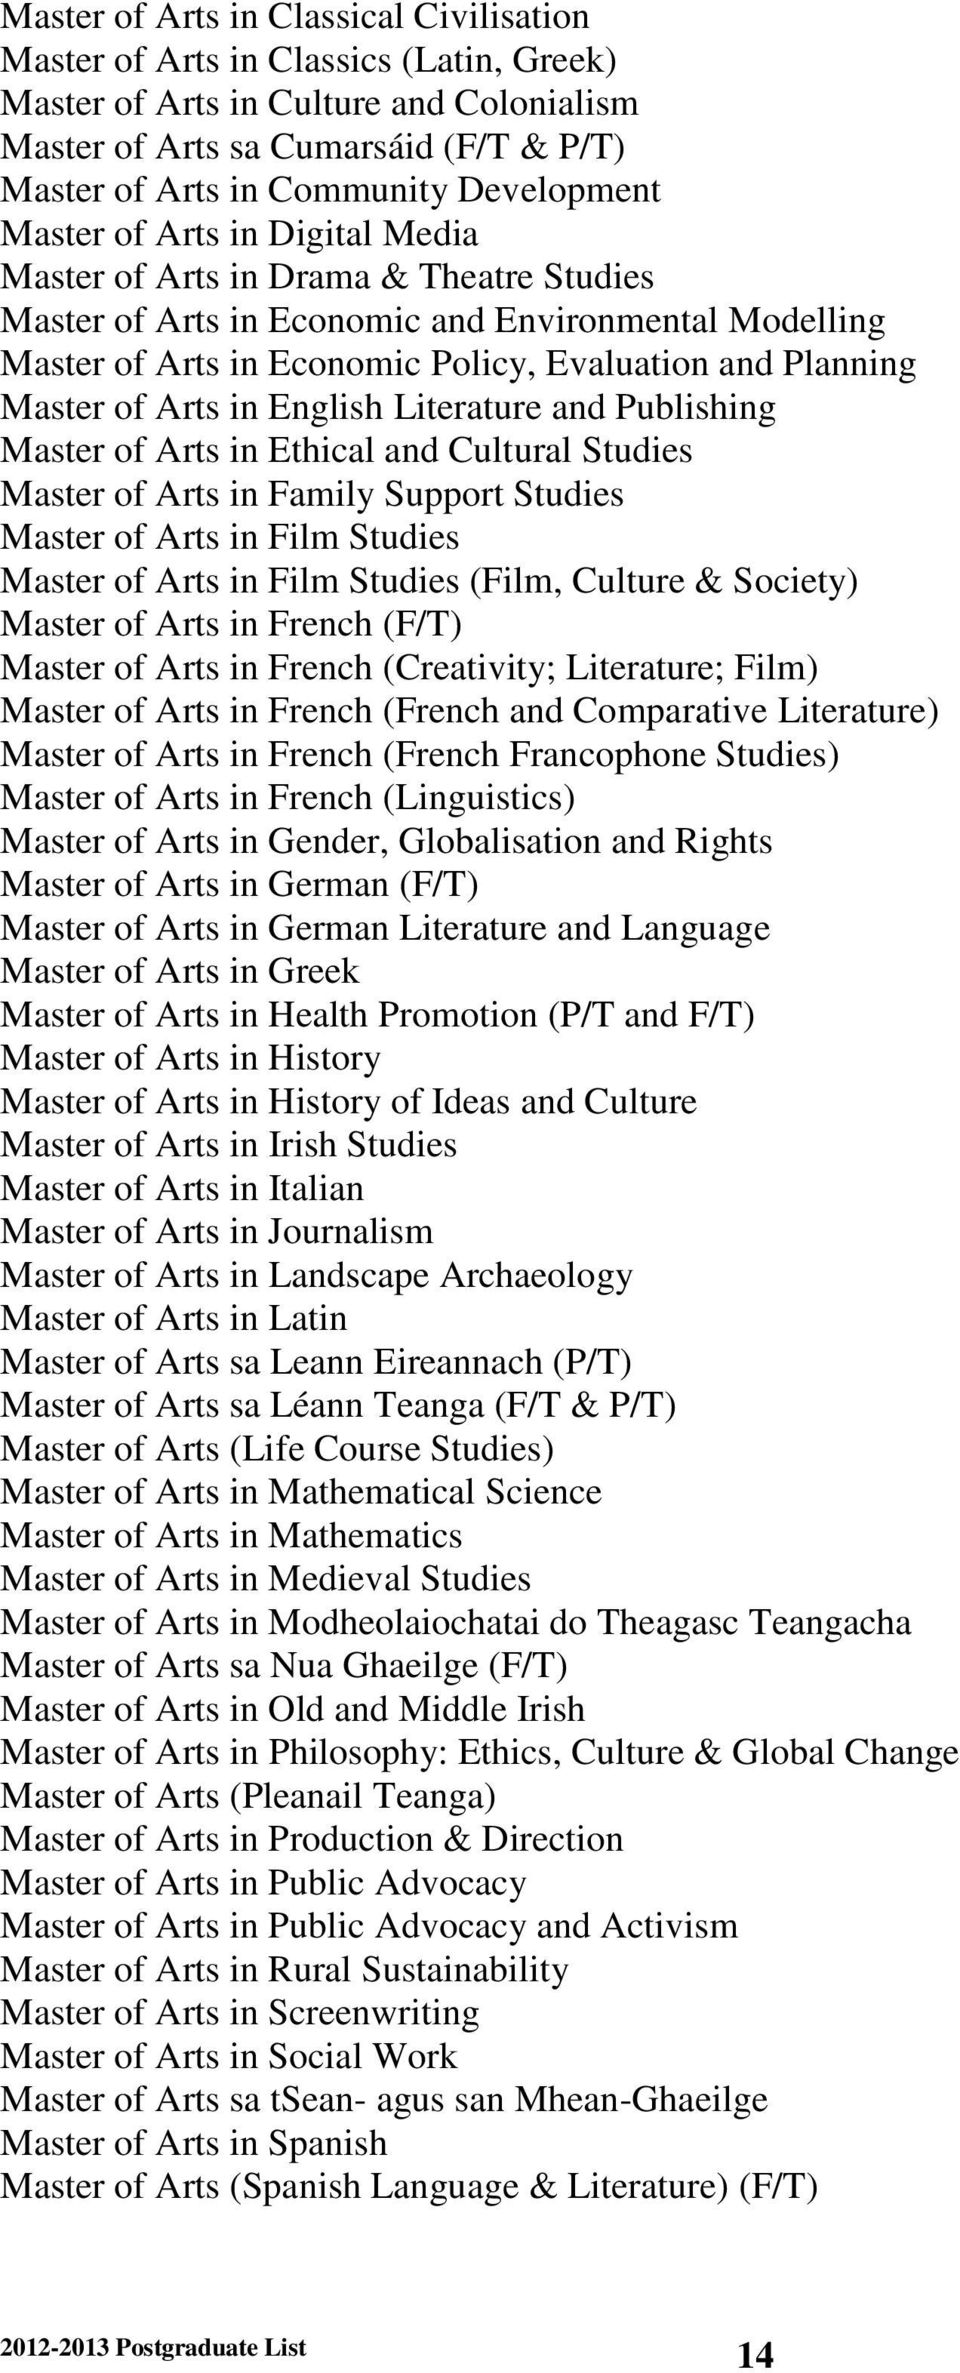 Master of Arts in English Literature and Publishing Master of Arts in Ethical and Cultural Studies Master of Arts in Family Support Studies Master of Arts in Film Studies Master of Arts in Film